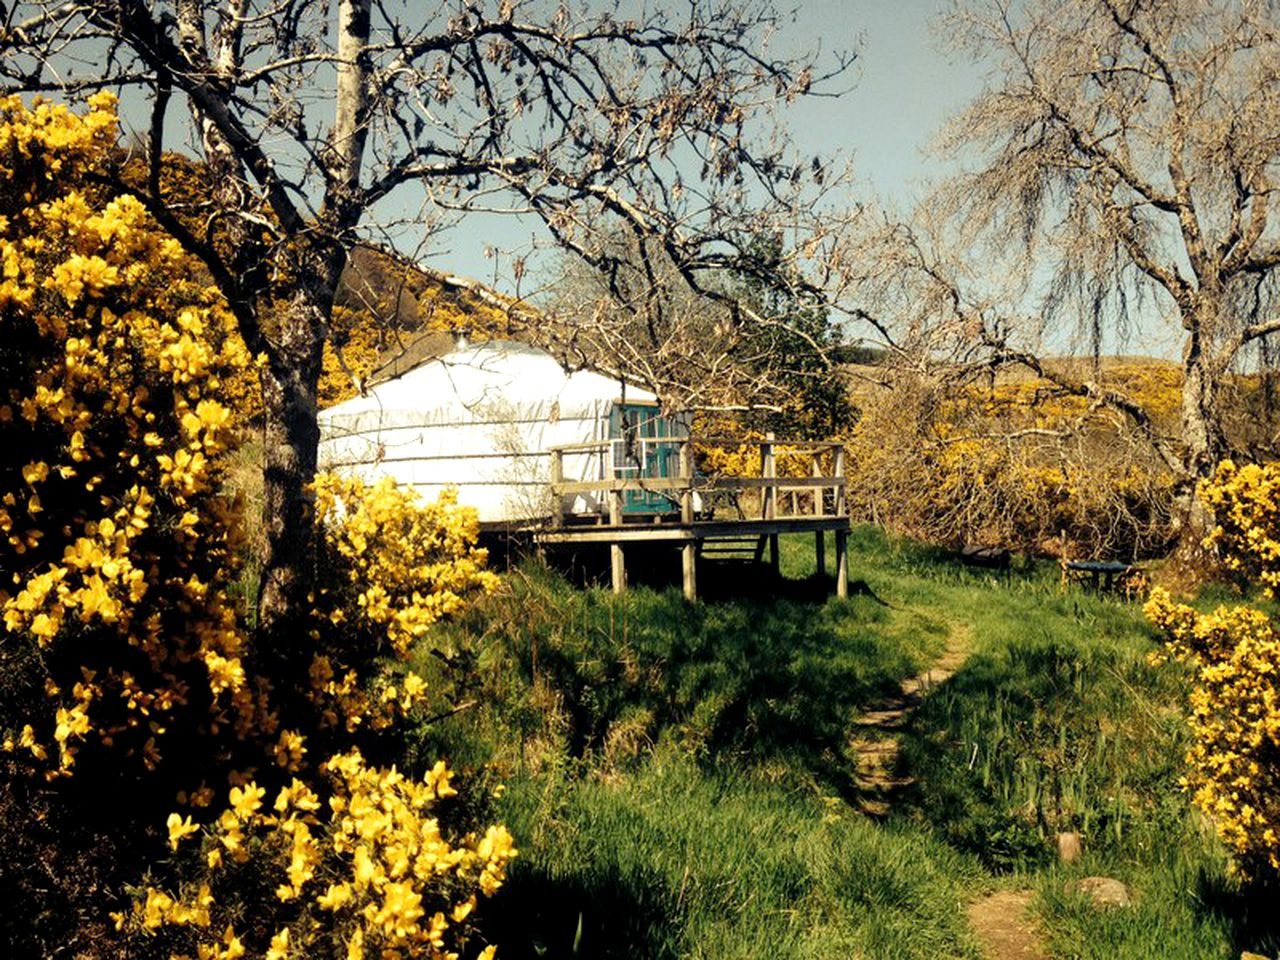 Yurts (Argyll and Bute, Scotland, United Kingdom)